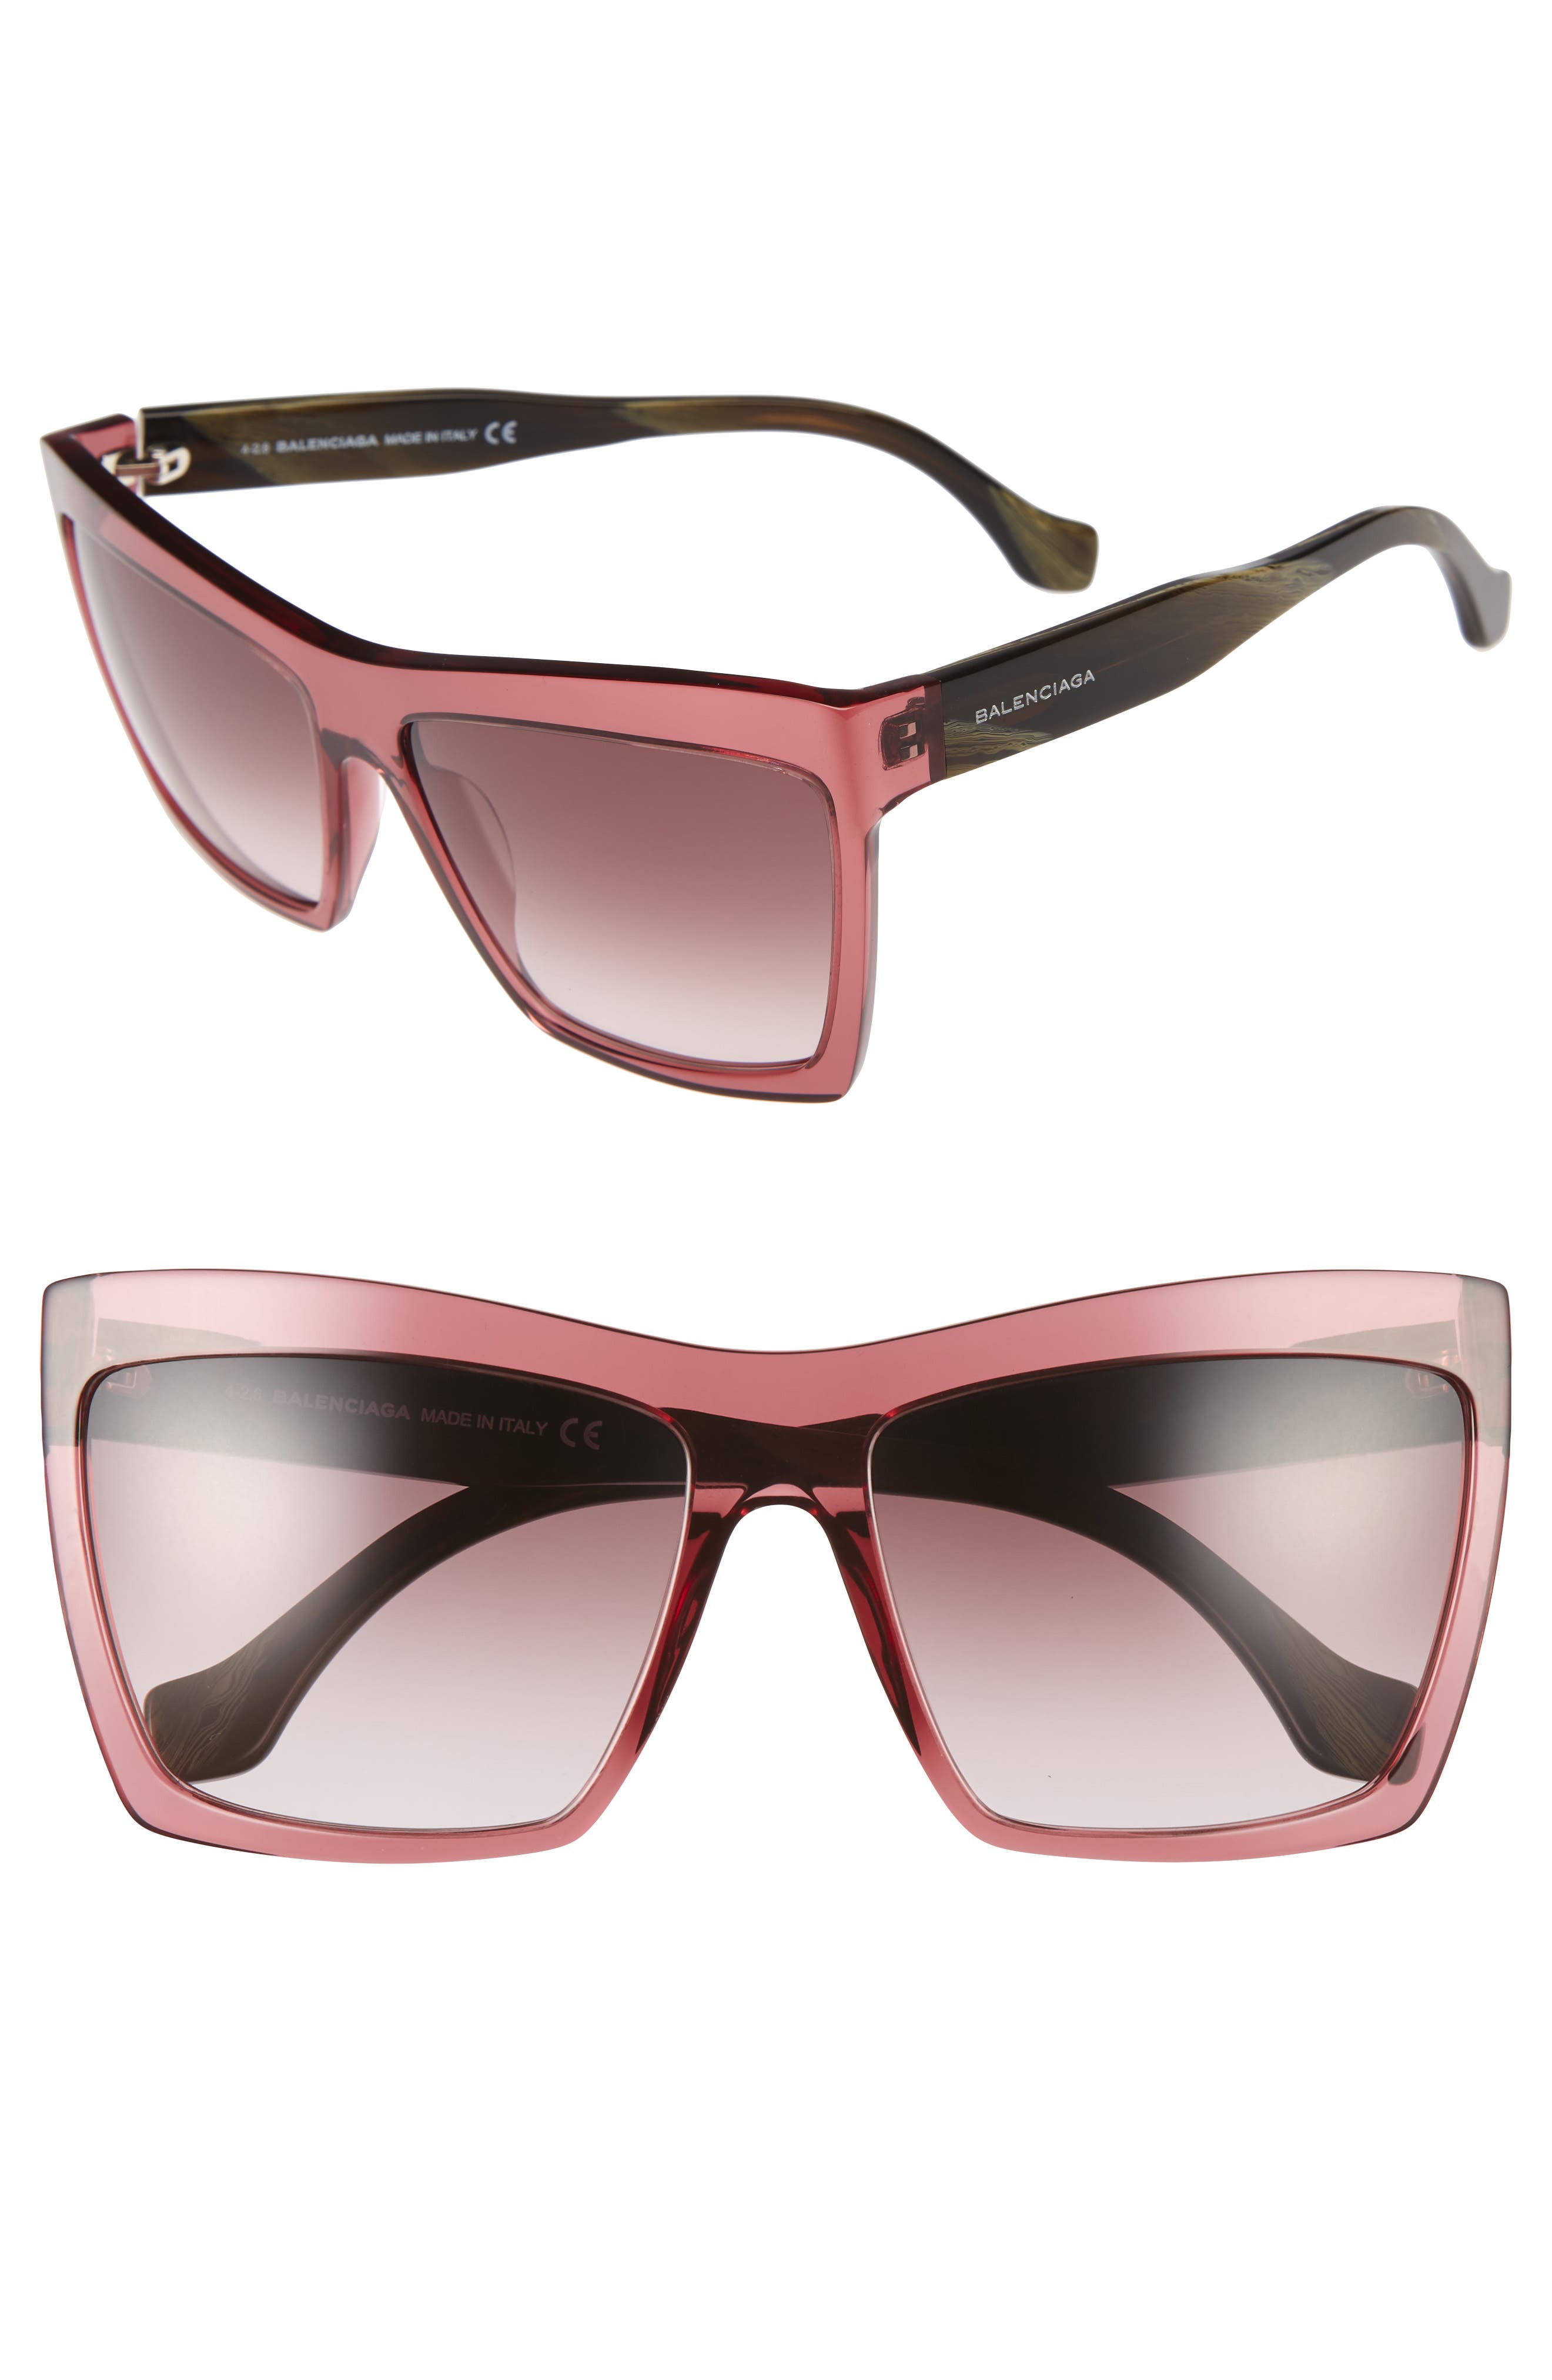 60mm Oversize Sunglasses,                         Main,                         color, Red/ Green/ Silver/ Red